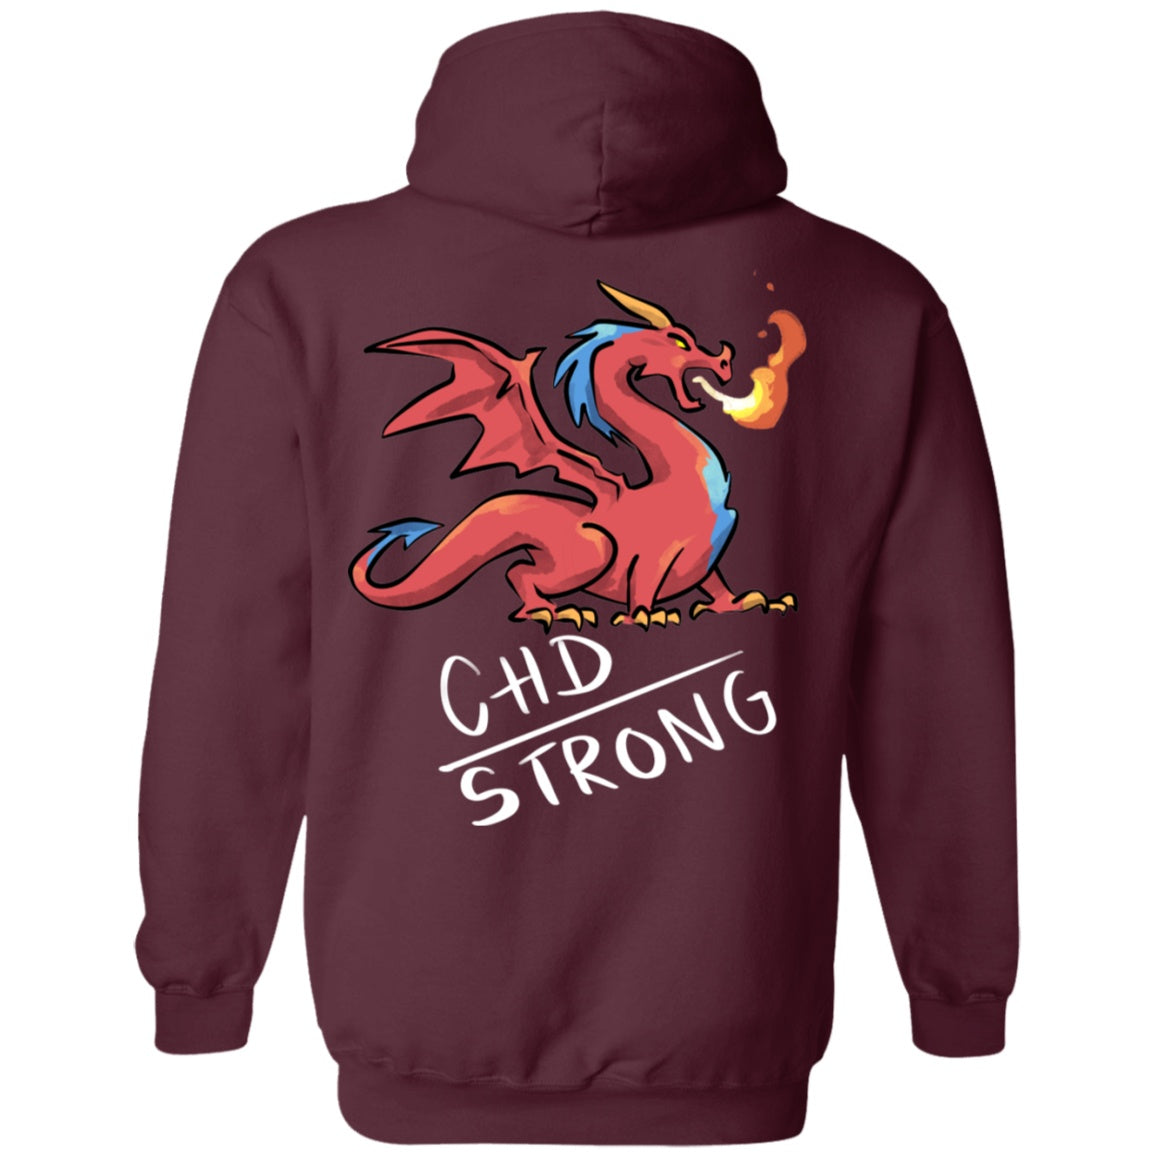 CHD Strong Dragon Pullover Hoodie 8 oz. - The Unchargeables